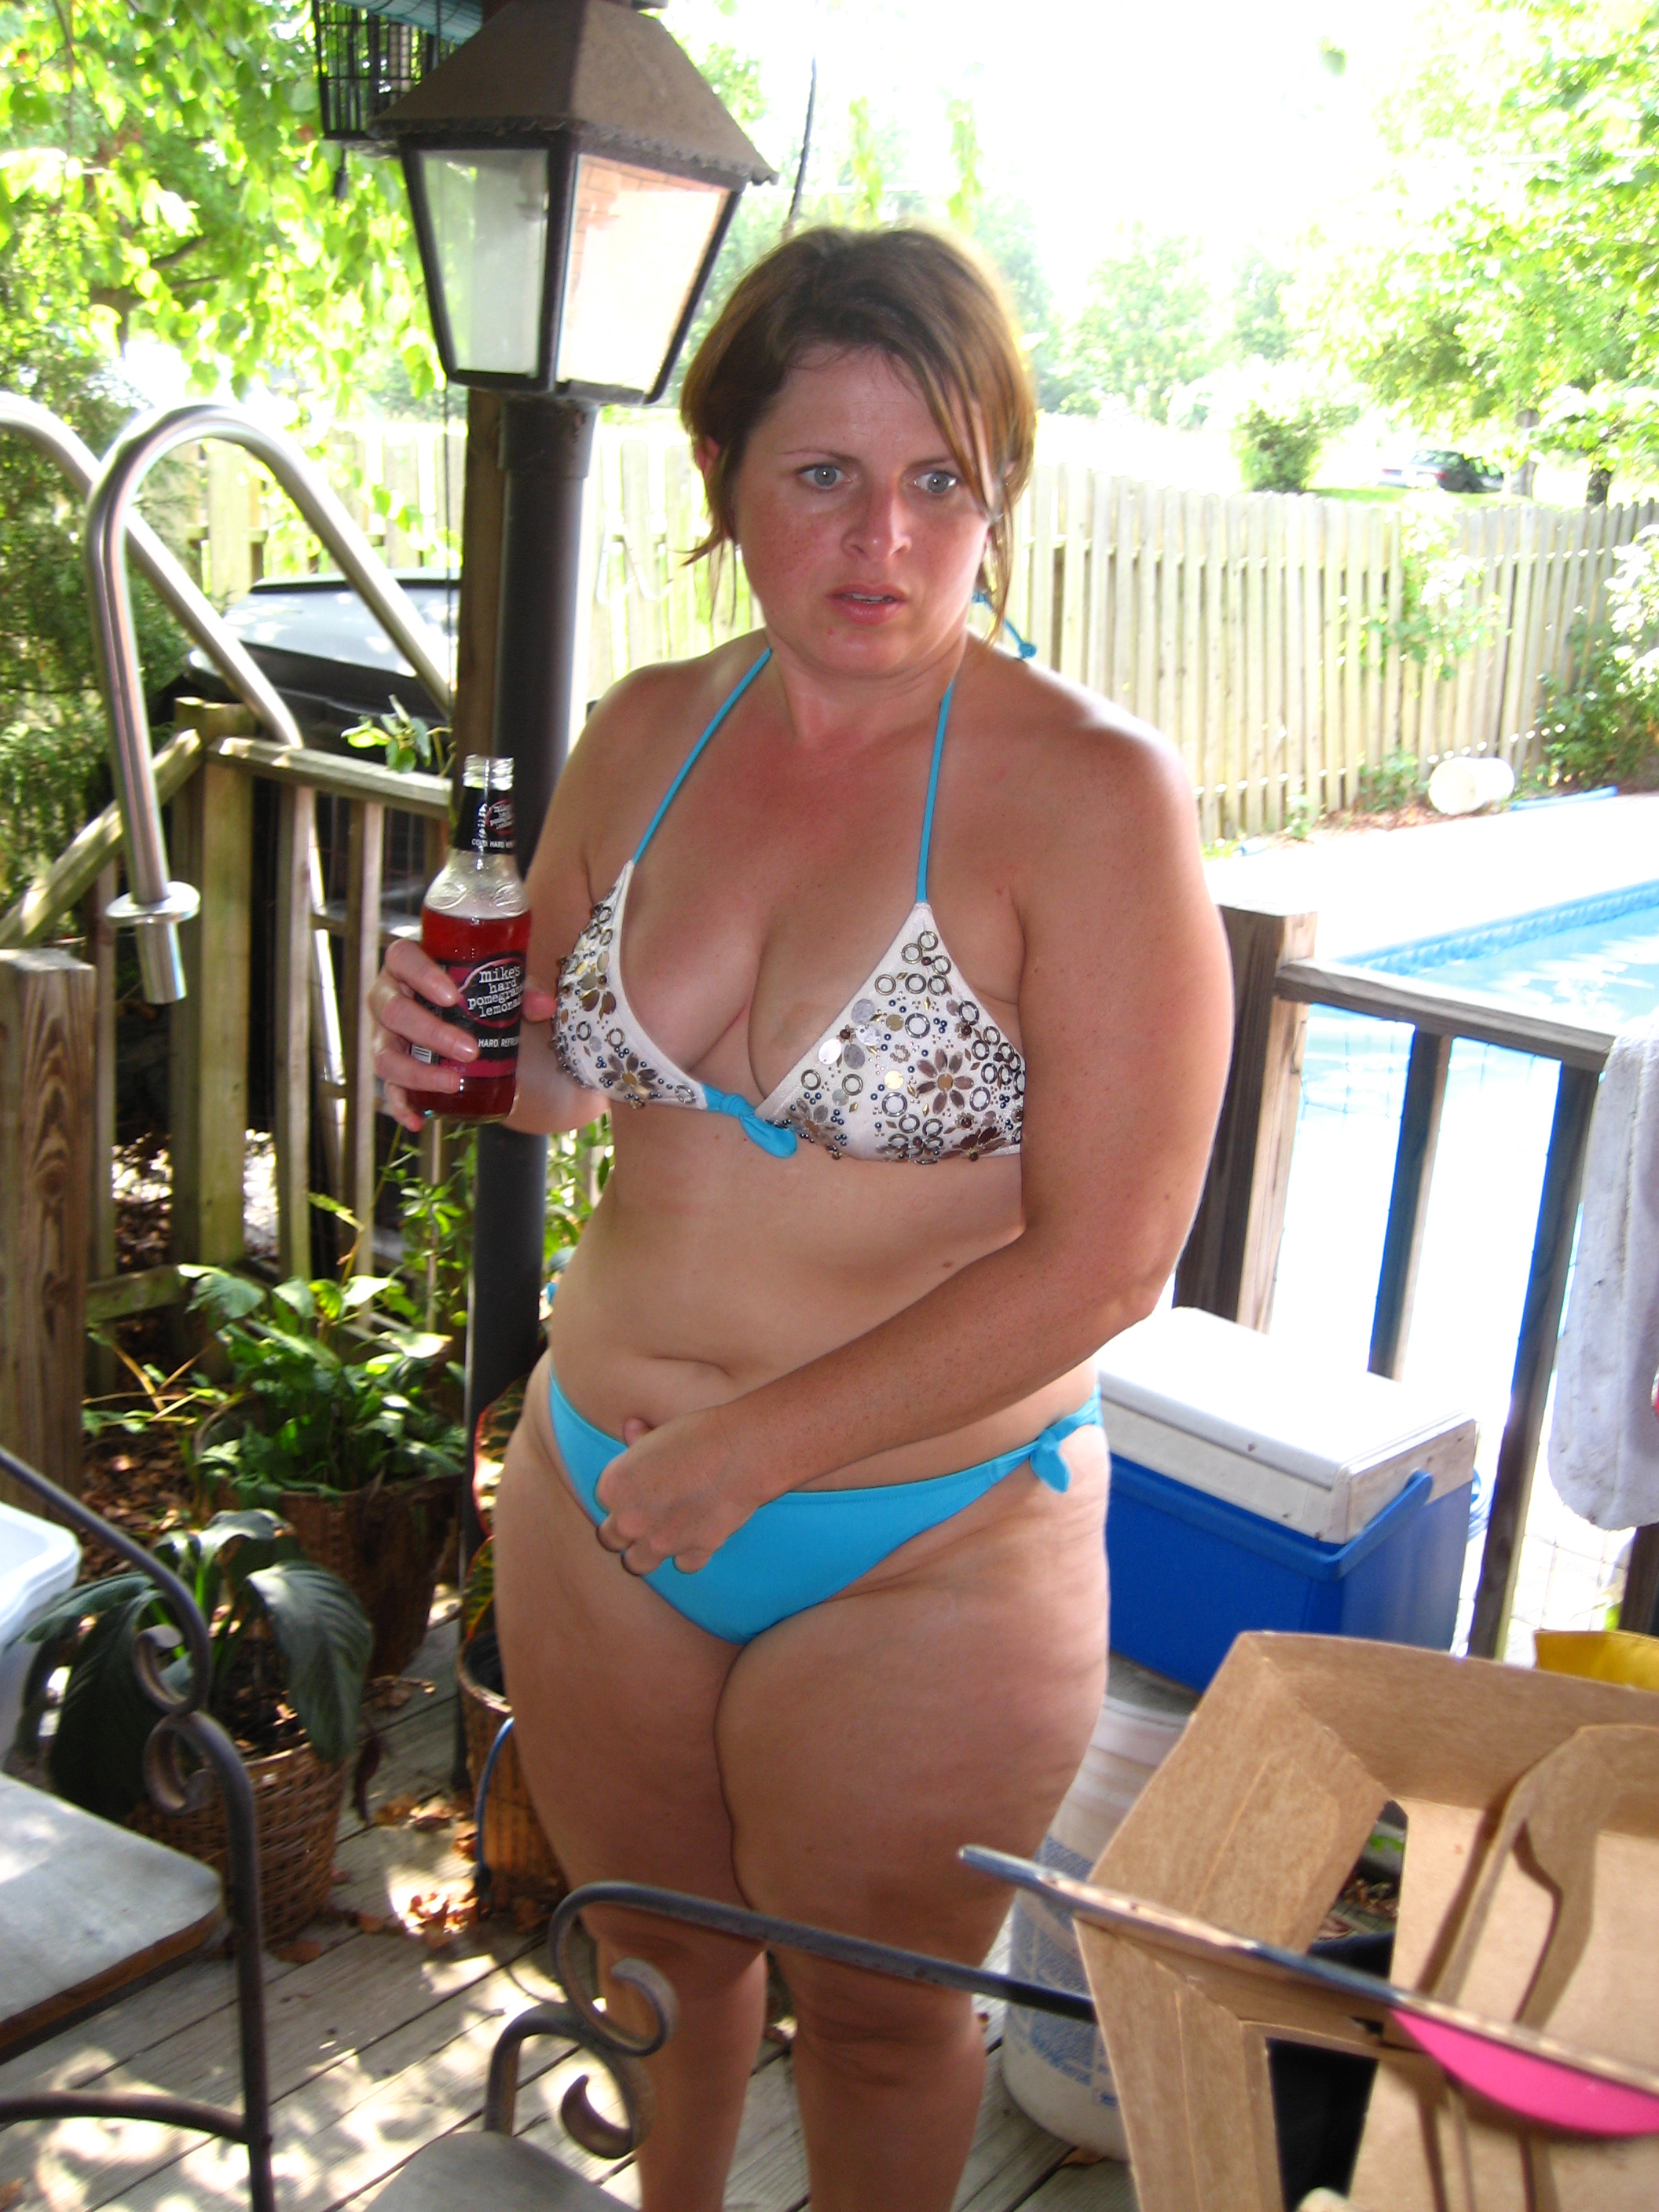 Does plan? mature nude bbw in bikini recommend you